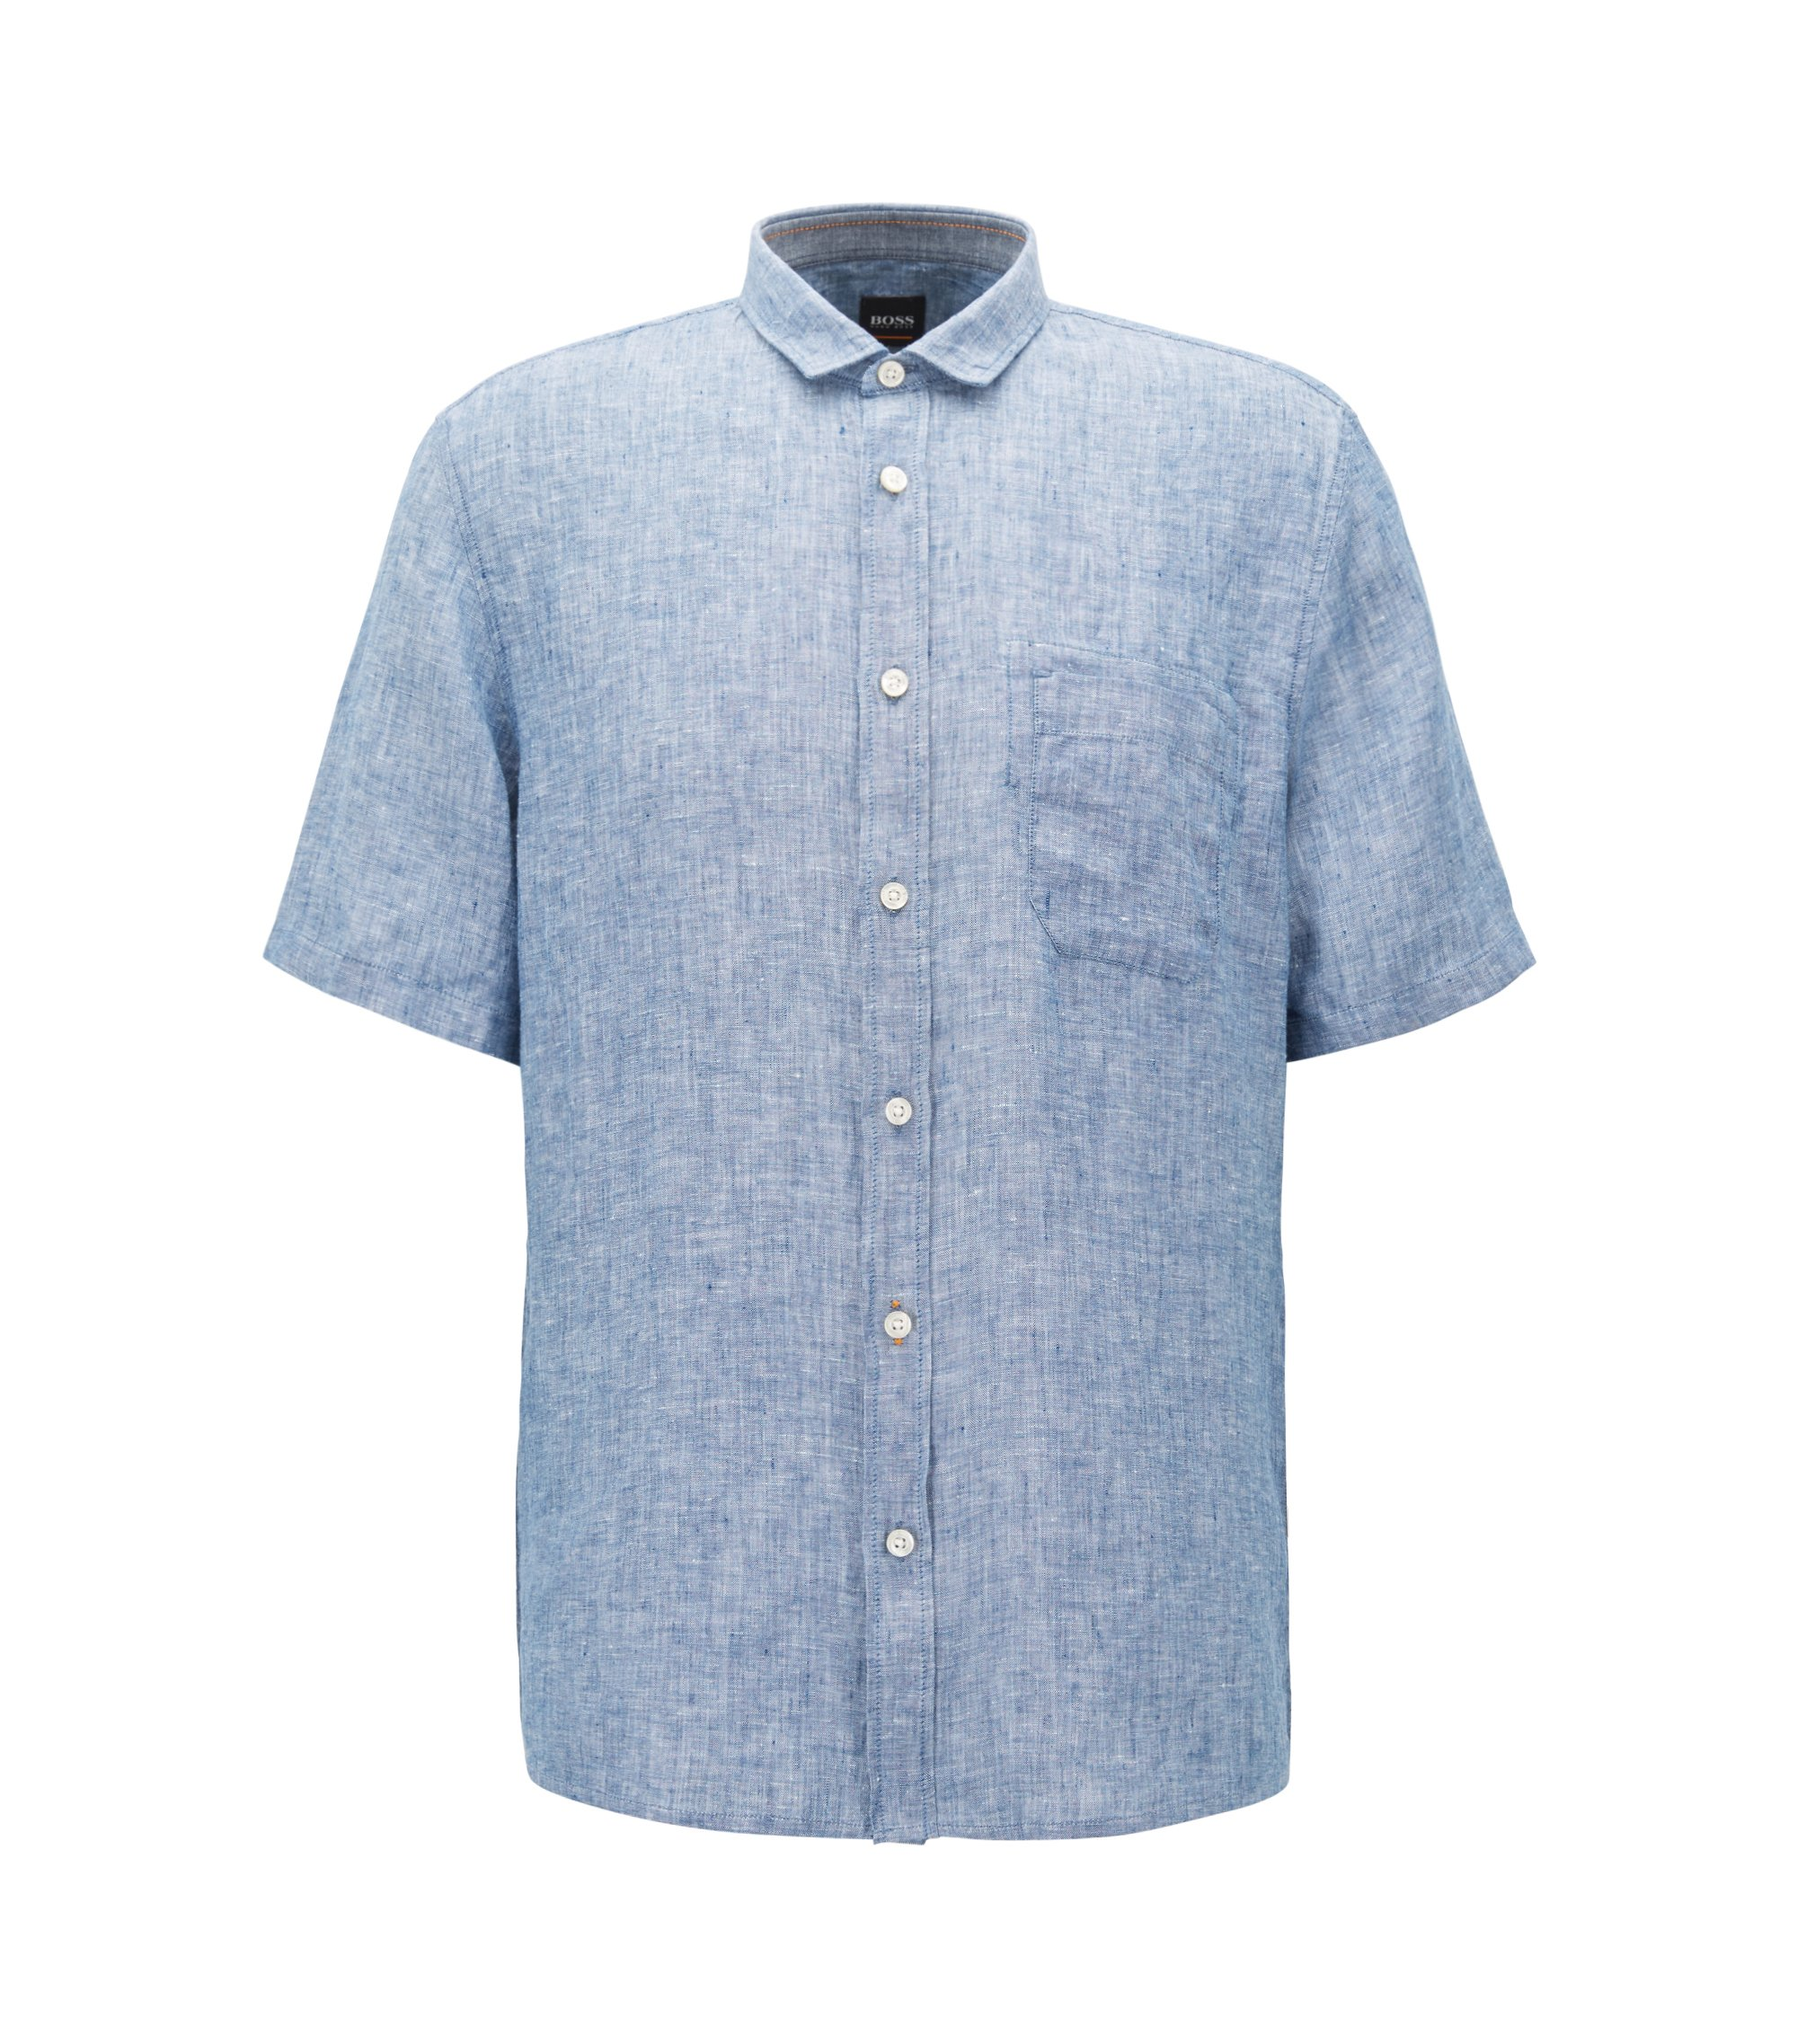 Camicia slim fit a maniche corte in lino tinto in filo, Blu scuro